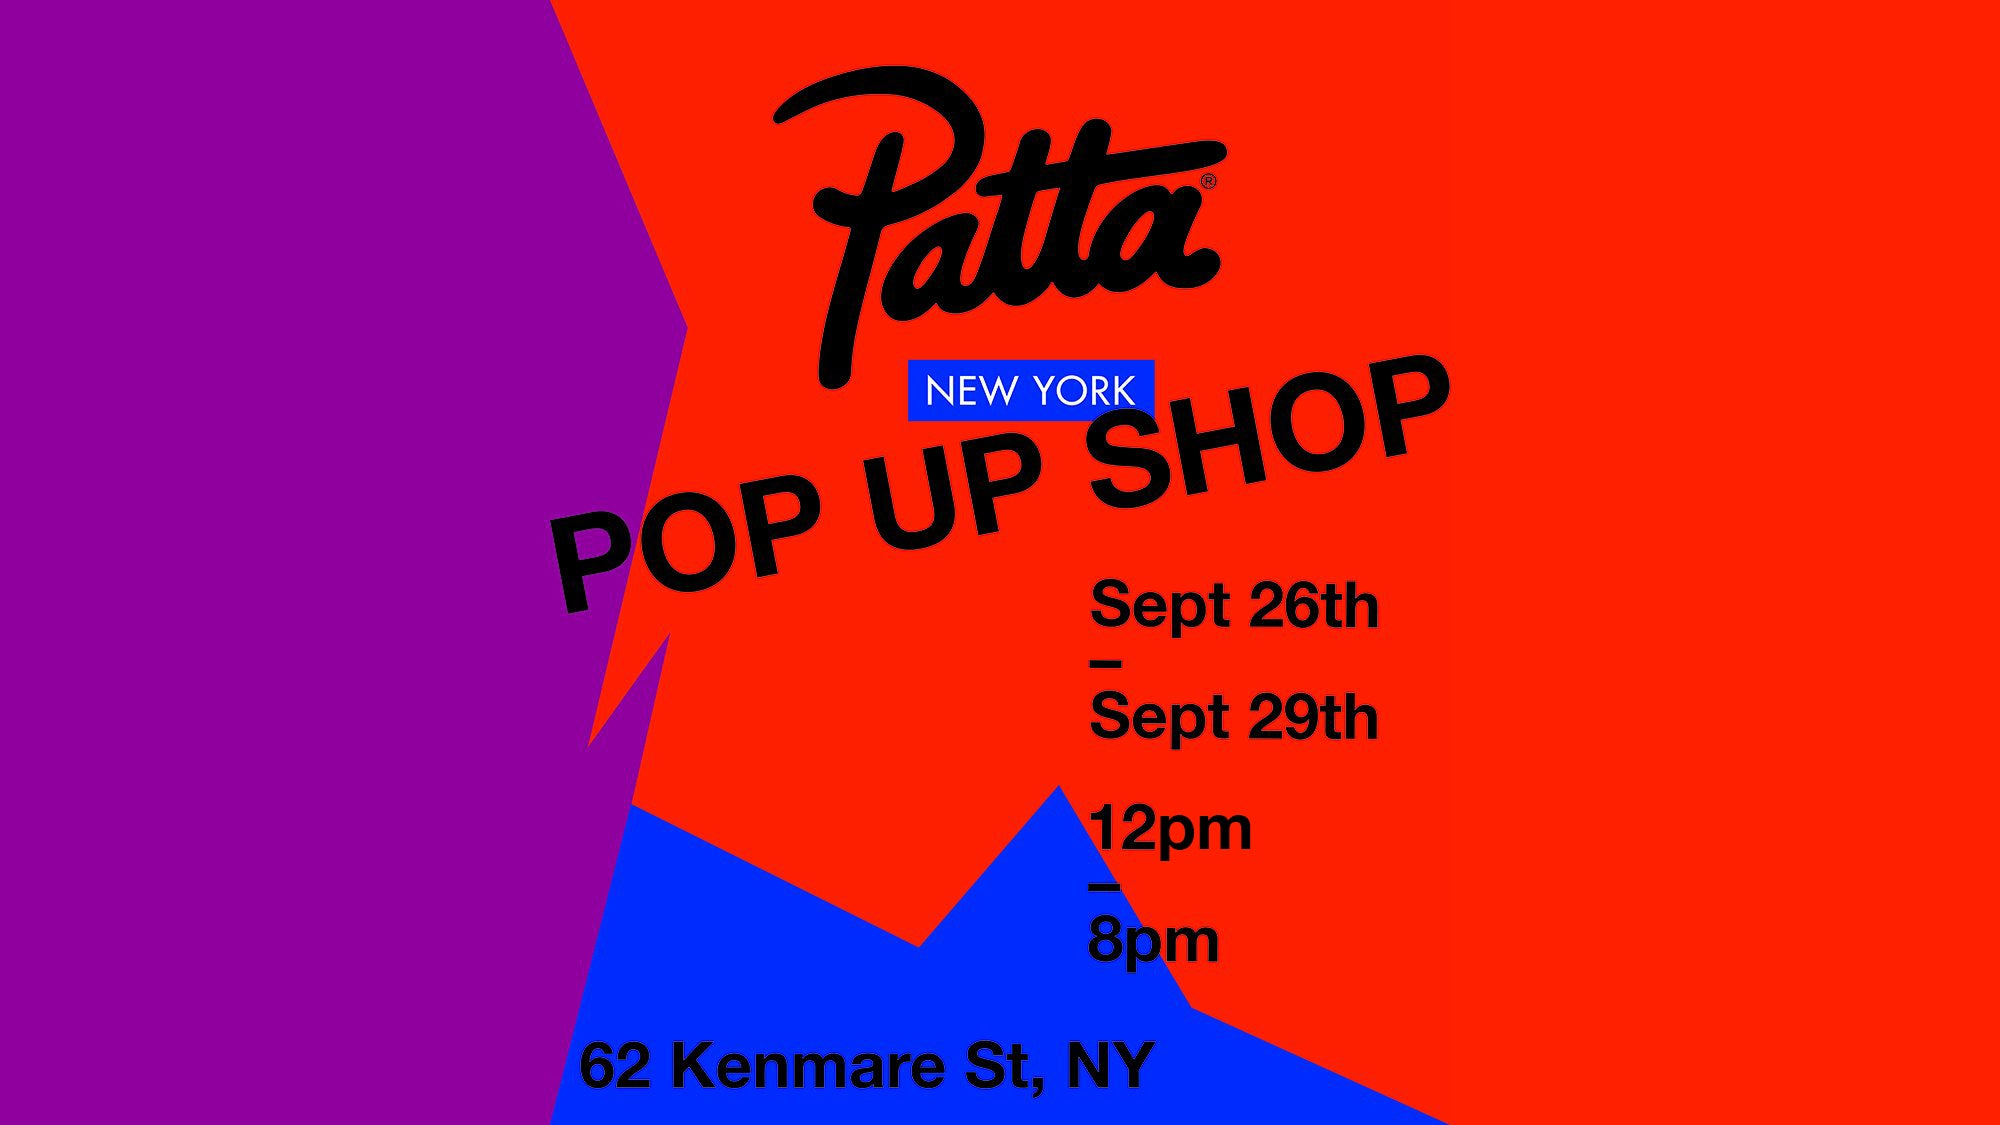 PATTA NEW YORK POP UP SHOP